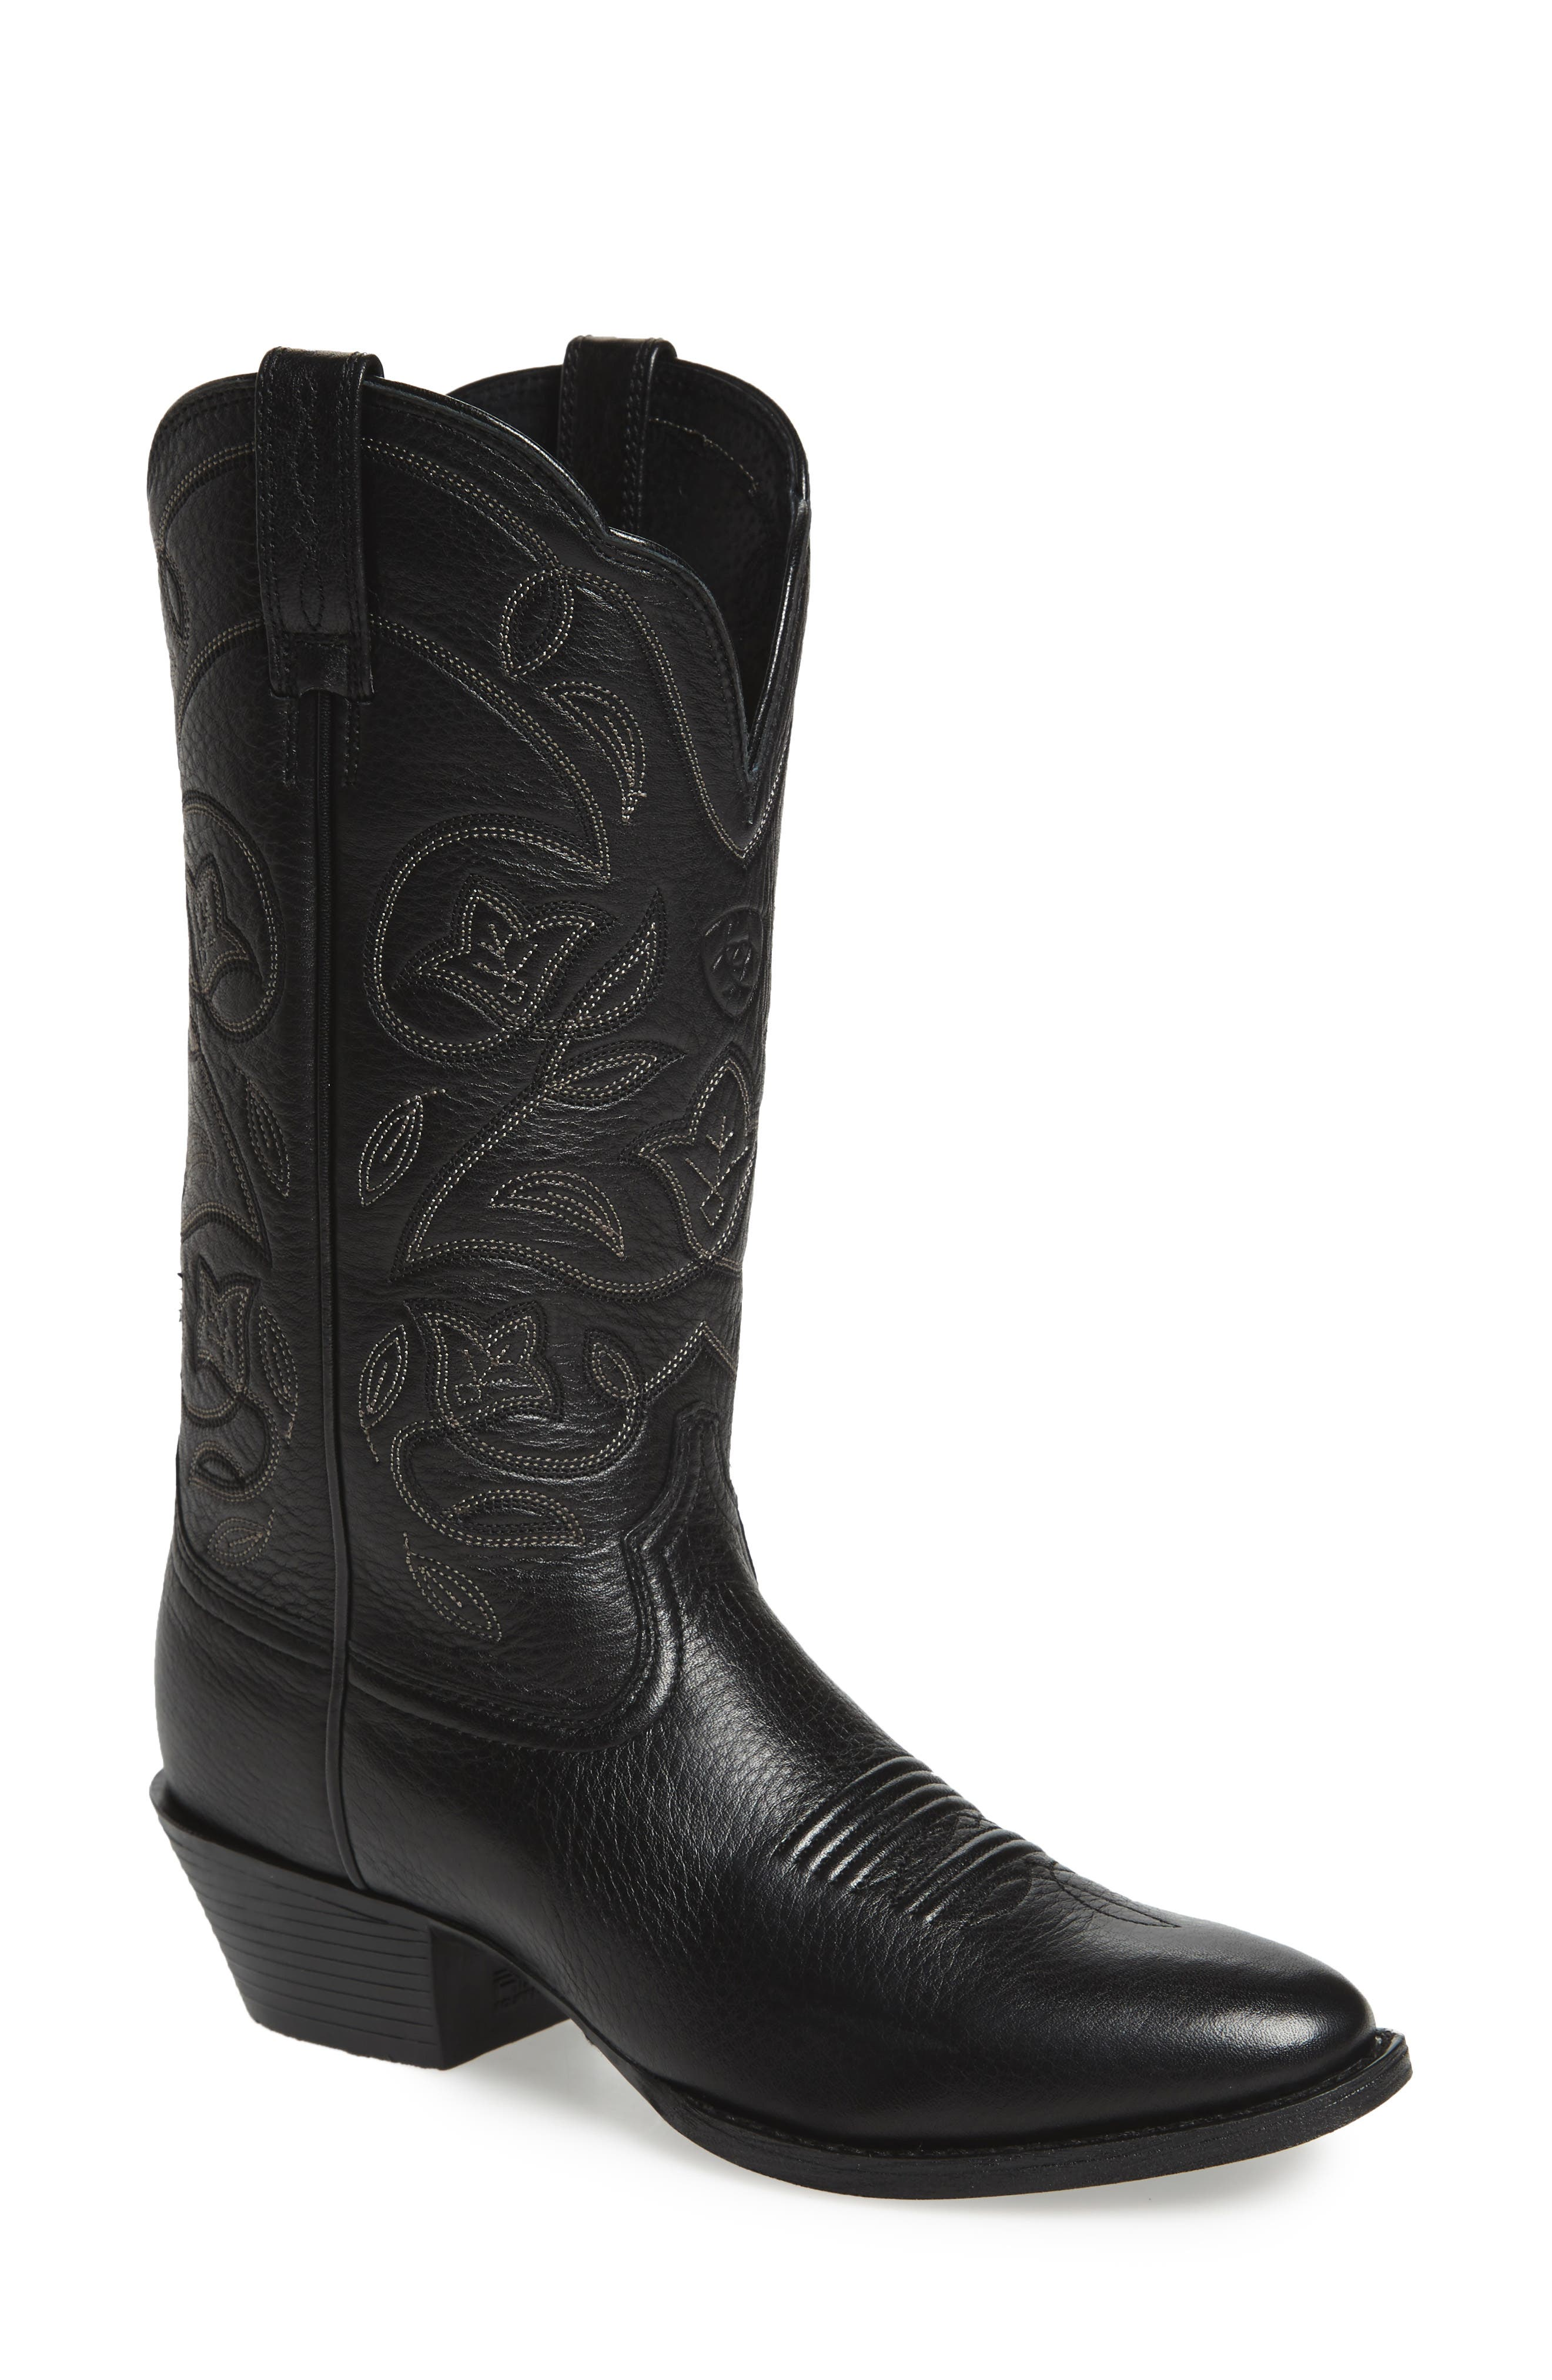 ARIAT, Heritage Western R-Toe Boot, Main thumbnail 1, color, BLACK LEATHER